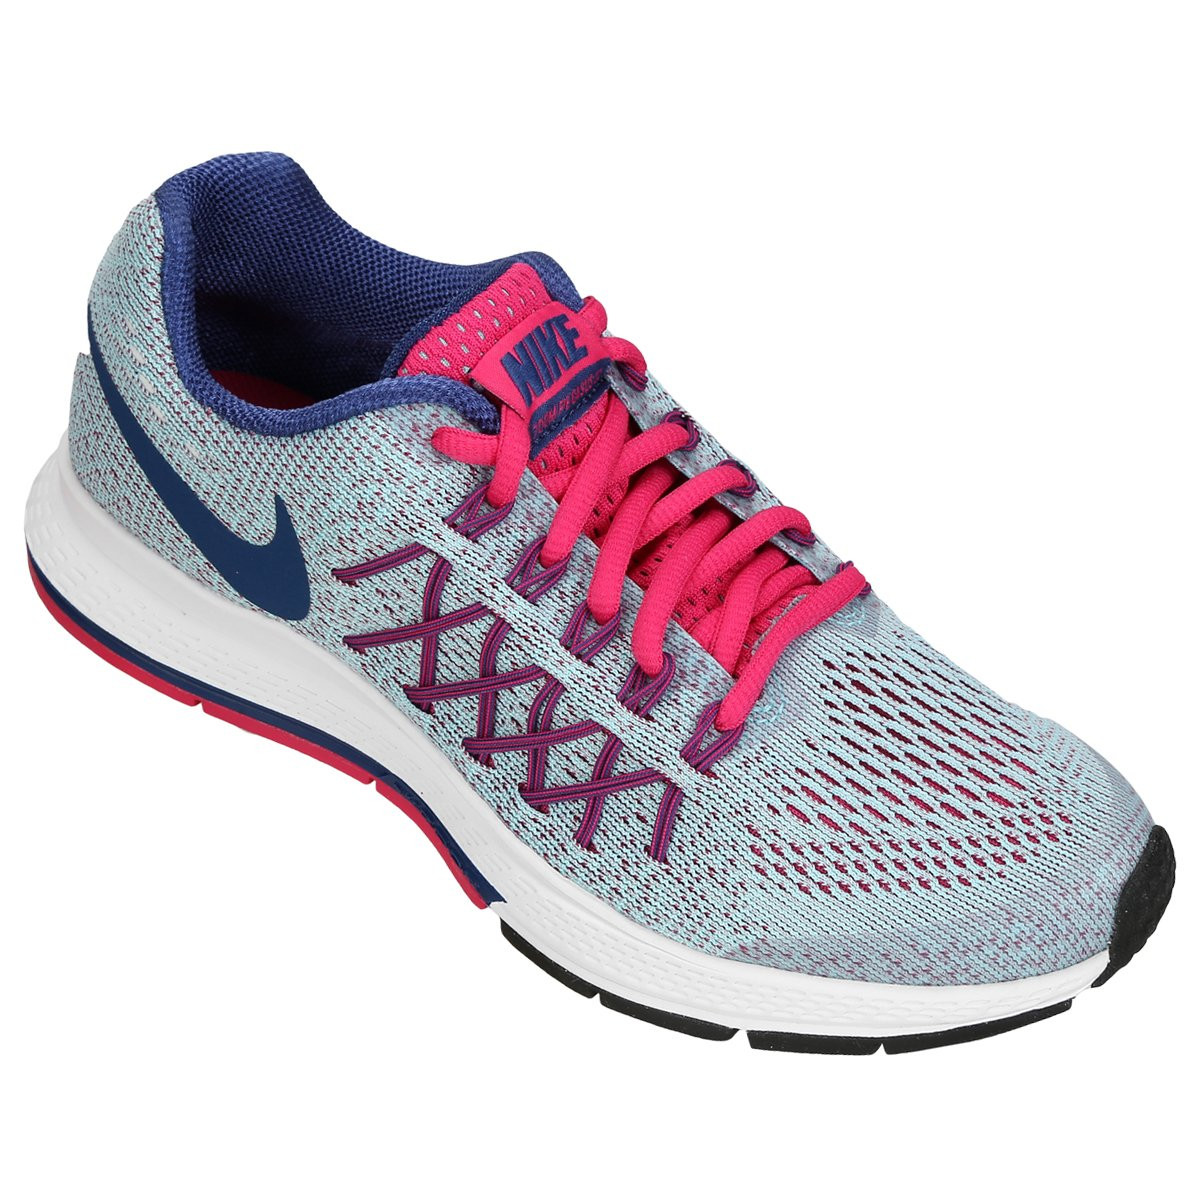 uk availability 800db f6bed Tênis Nike Zoom Pegasus 32 Infantil - Compre Agora  Netshoes